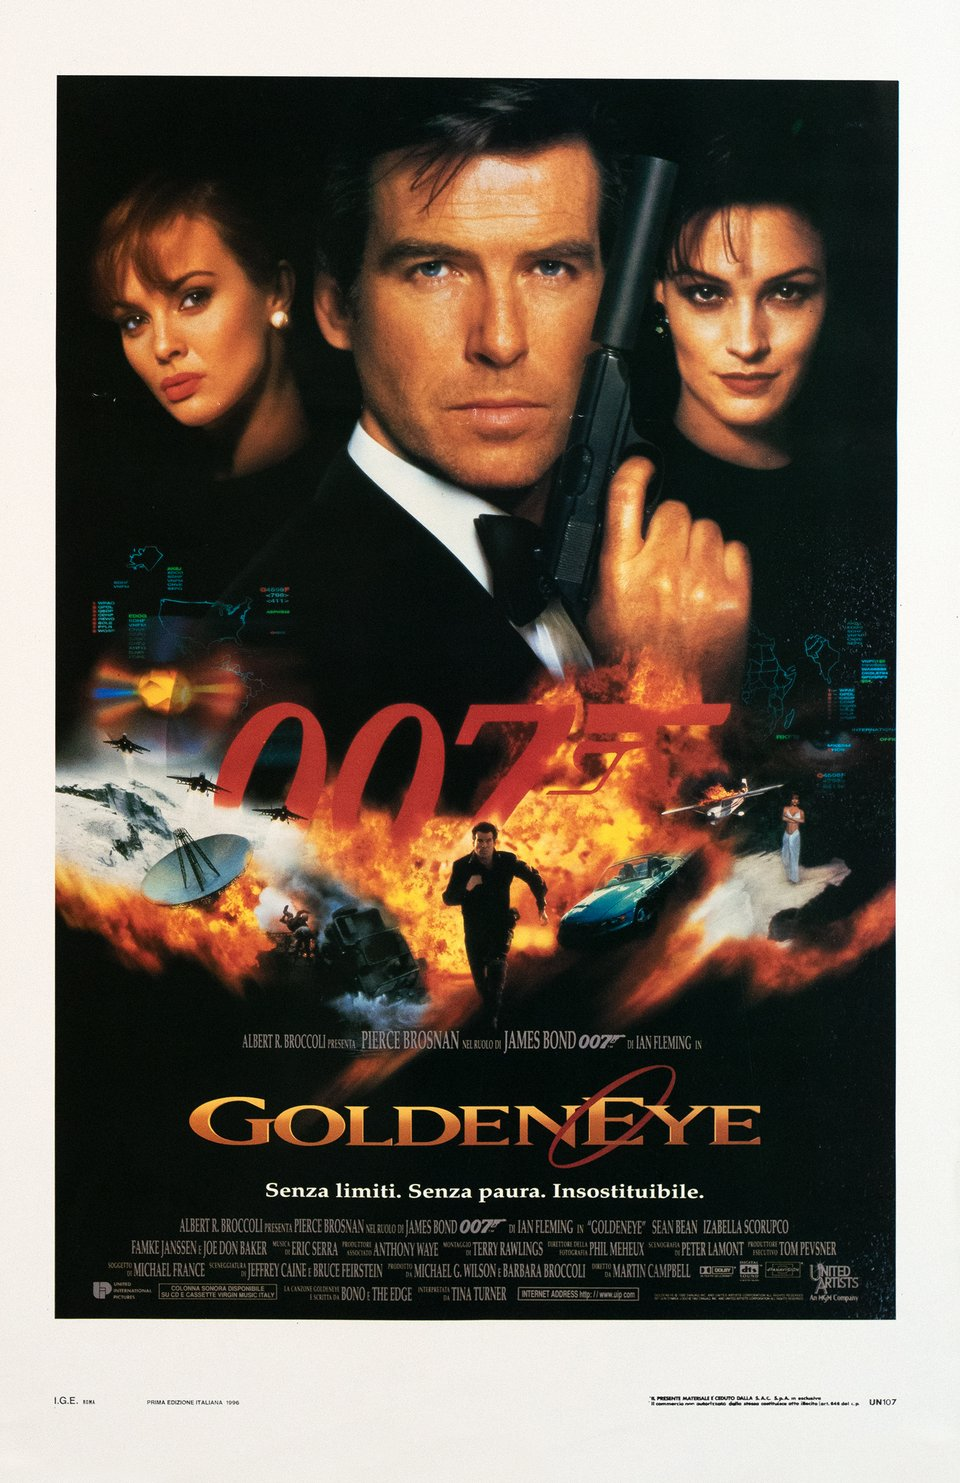 James Bond 007, GoldenEye – Vintage poster – Keith HAMSHERE, Terry O'NEILL, George WHITEAR – 1996